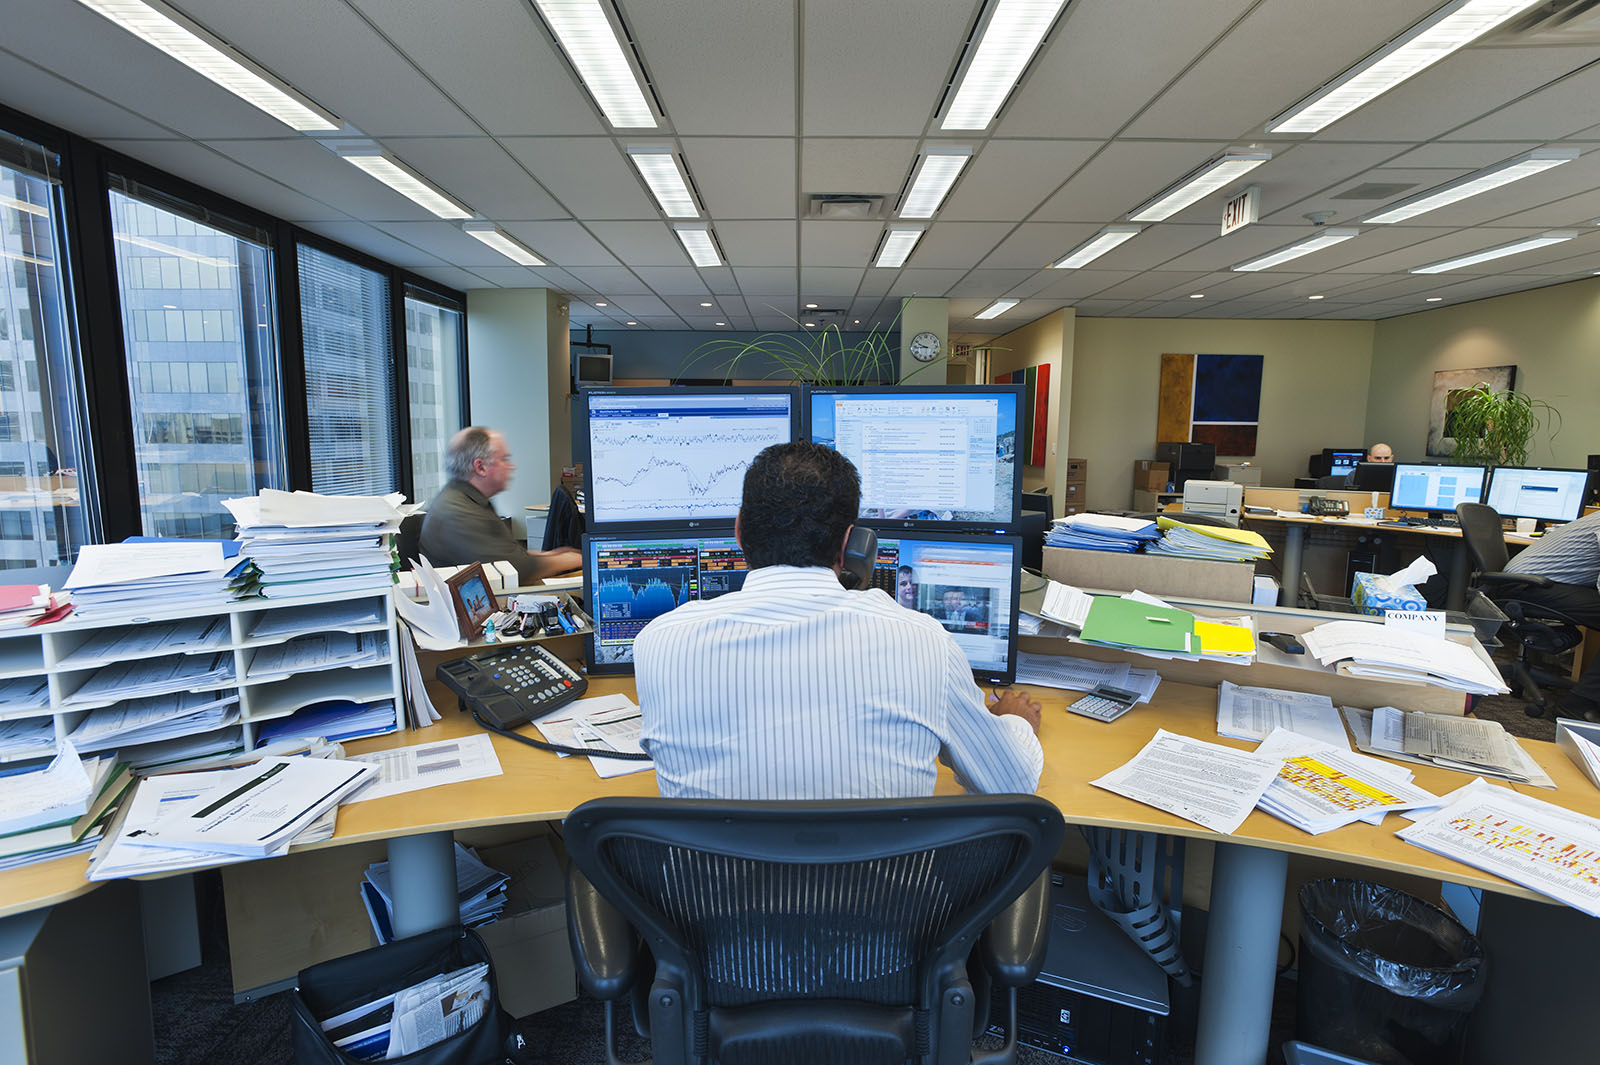 Rear view of a business analyst facing four computer screens